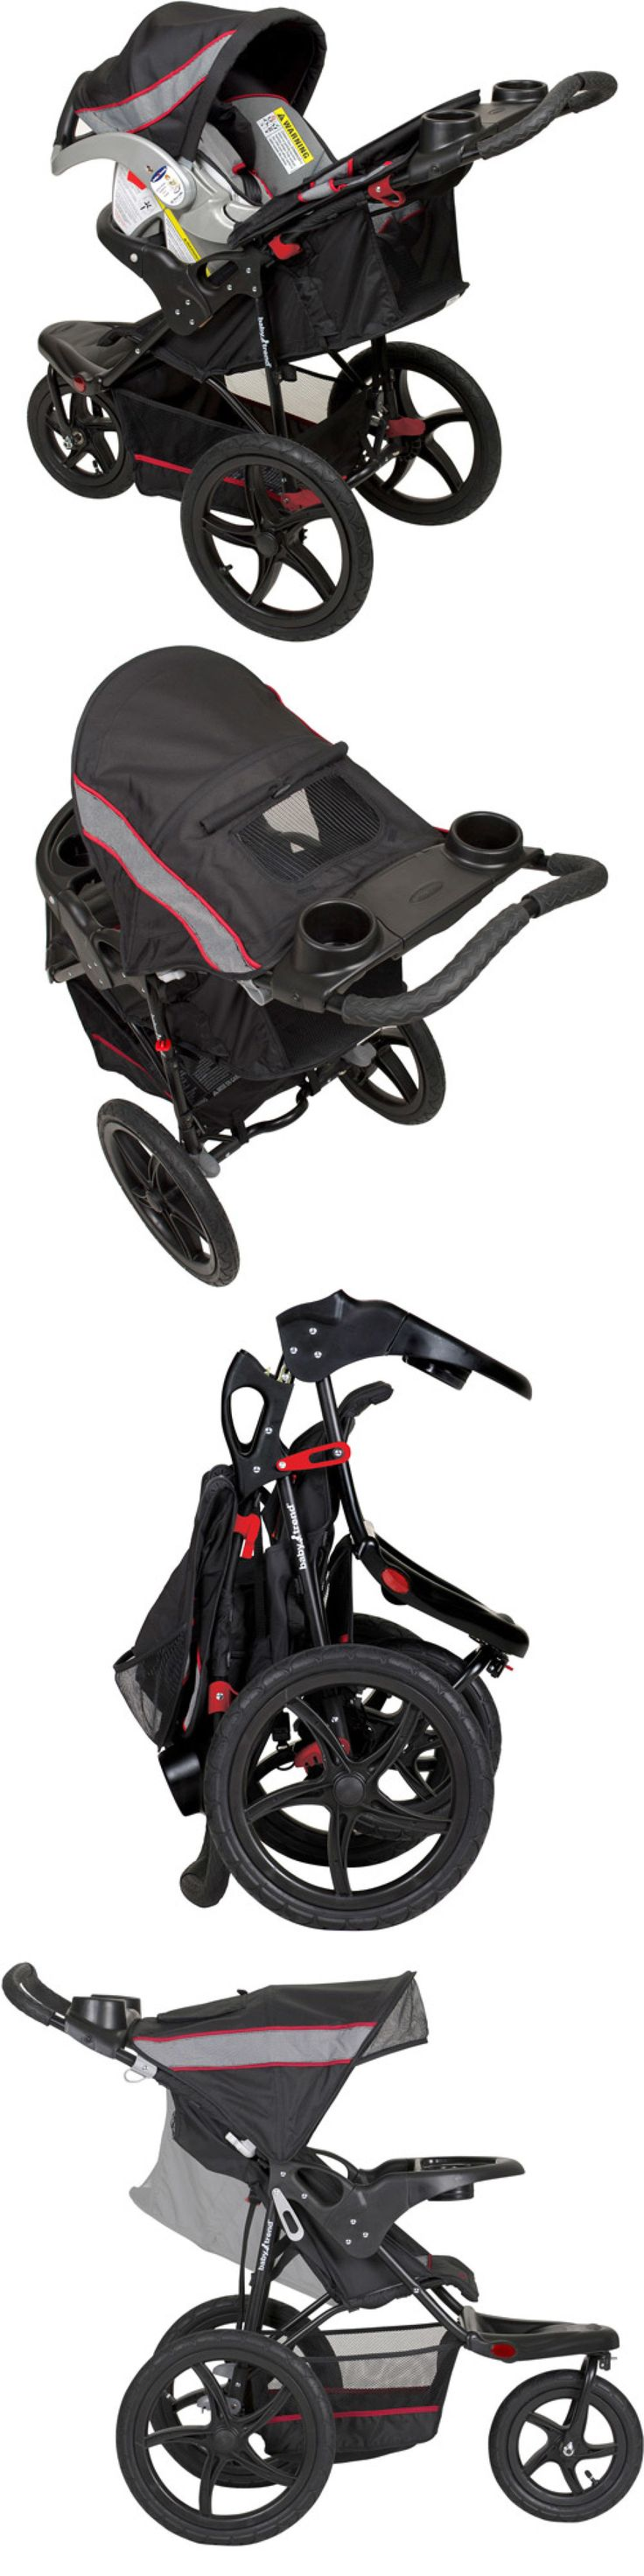 Strollers Baby Jogging Stroller Jogger Canopy Travel Lightweight Padded Seat Millennium BUY